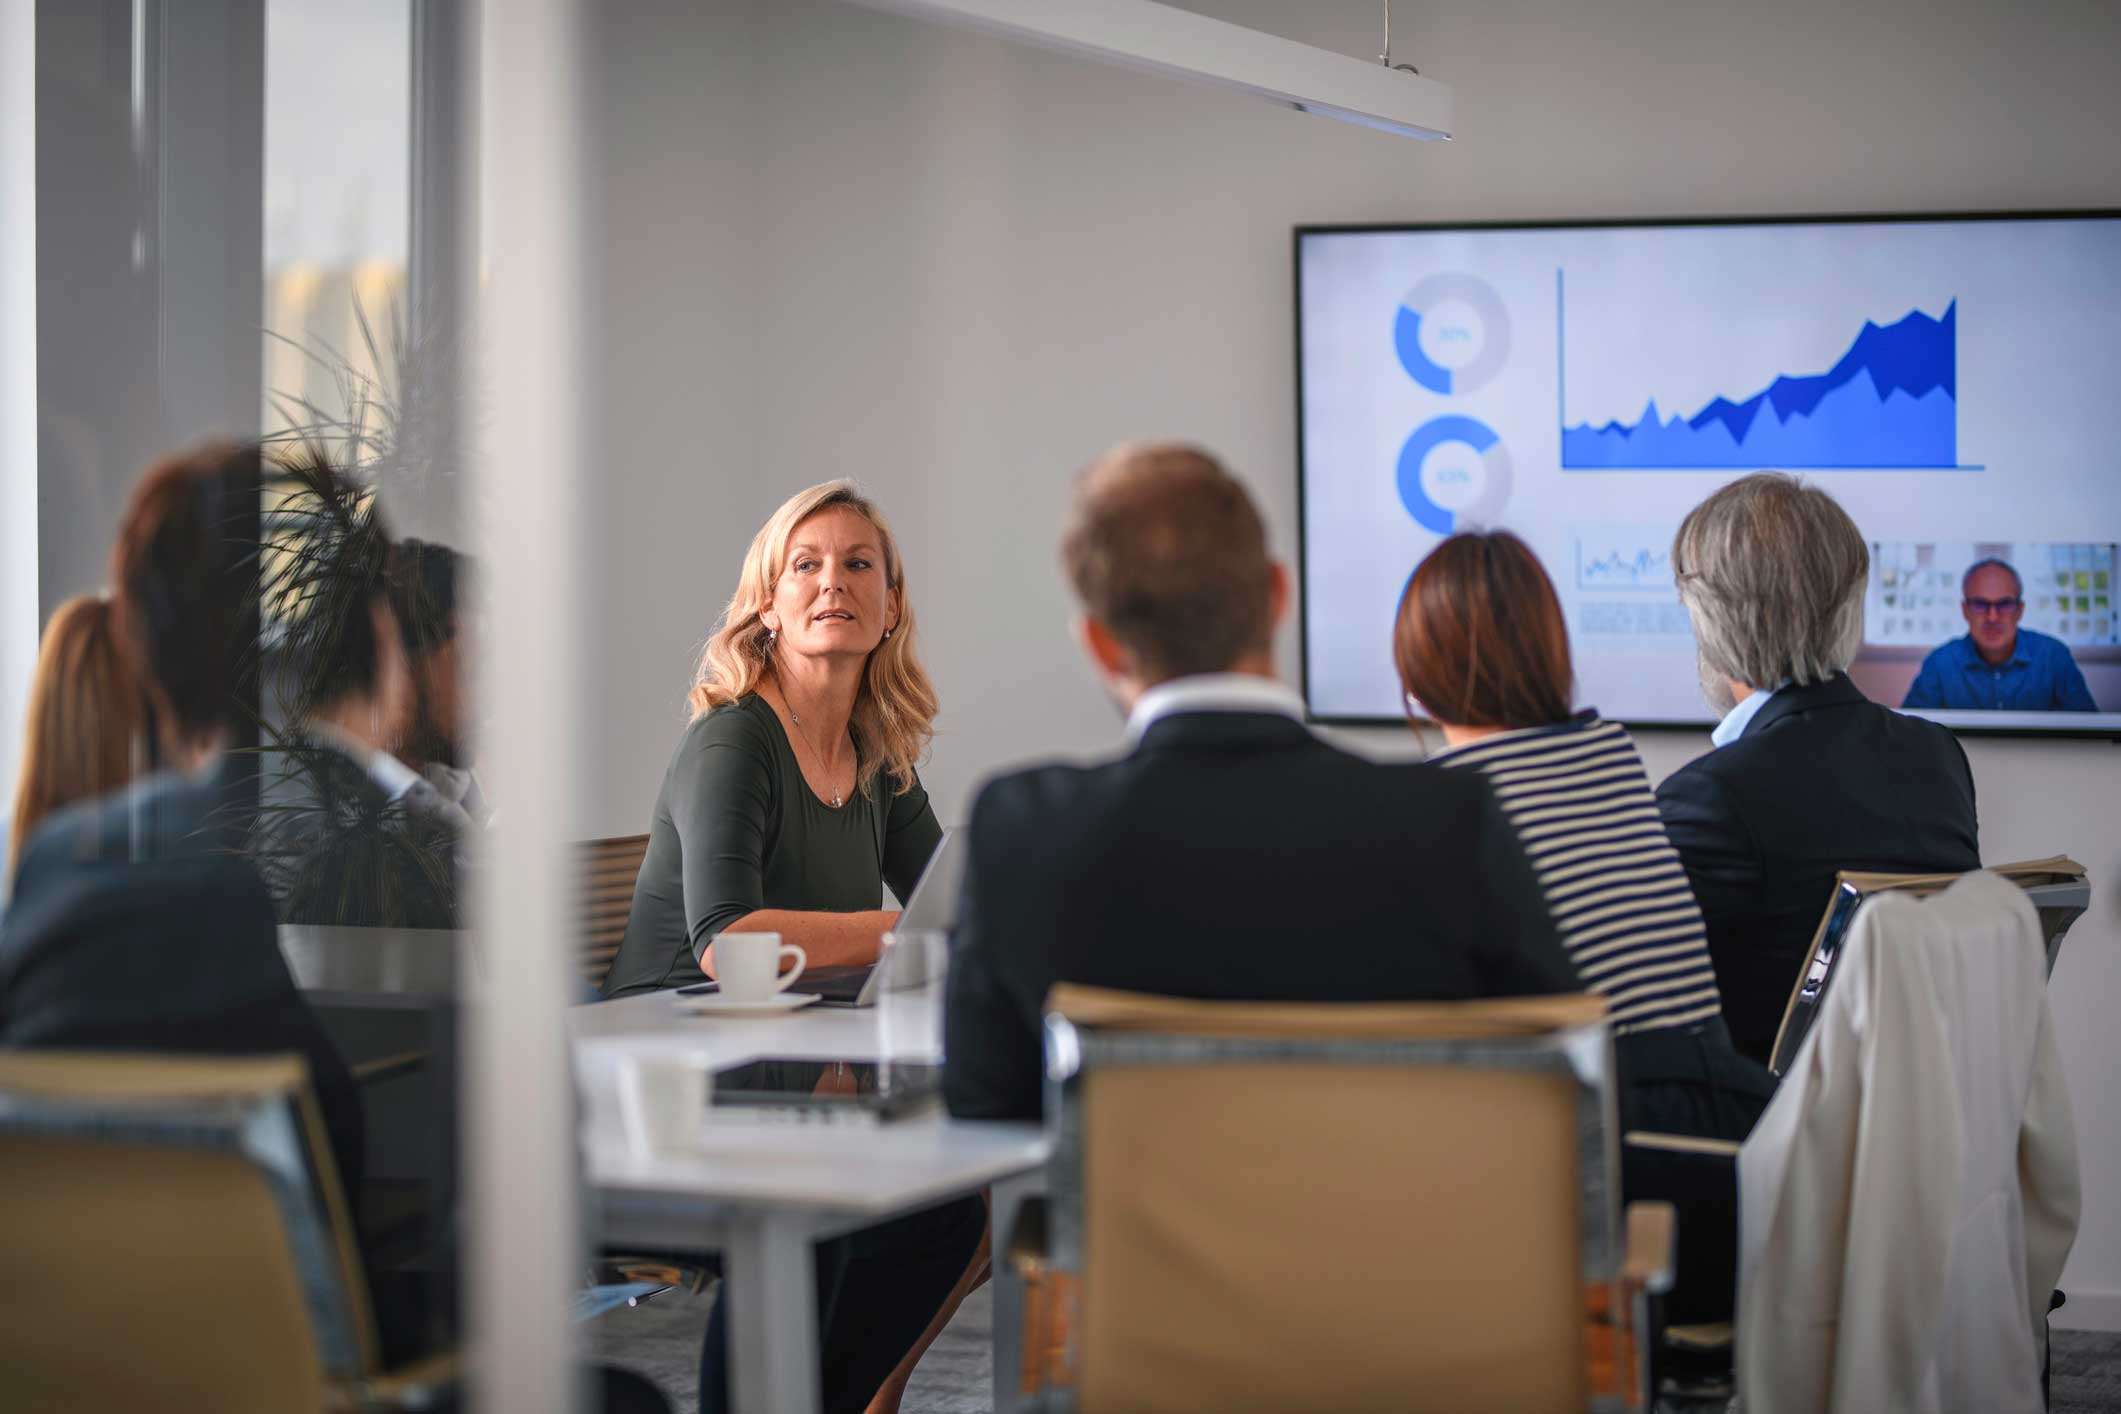 Employees around a conference table discussing a presentation with a client on screen for a video conference